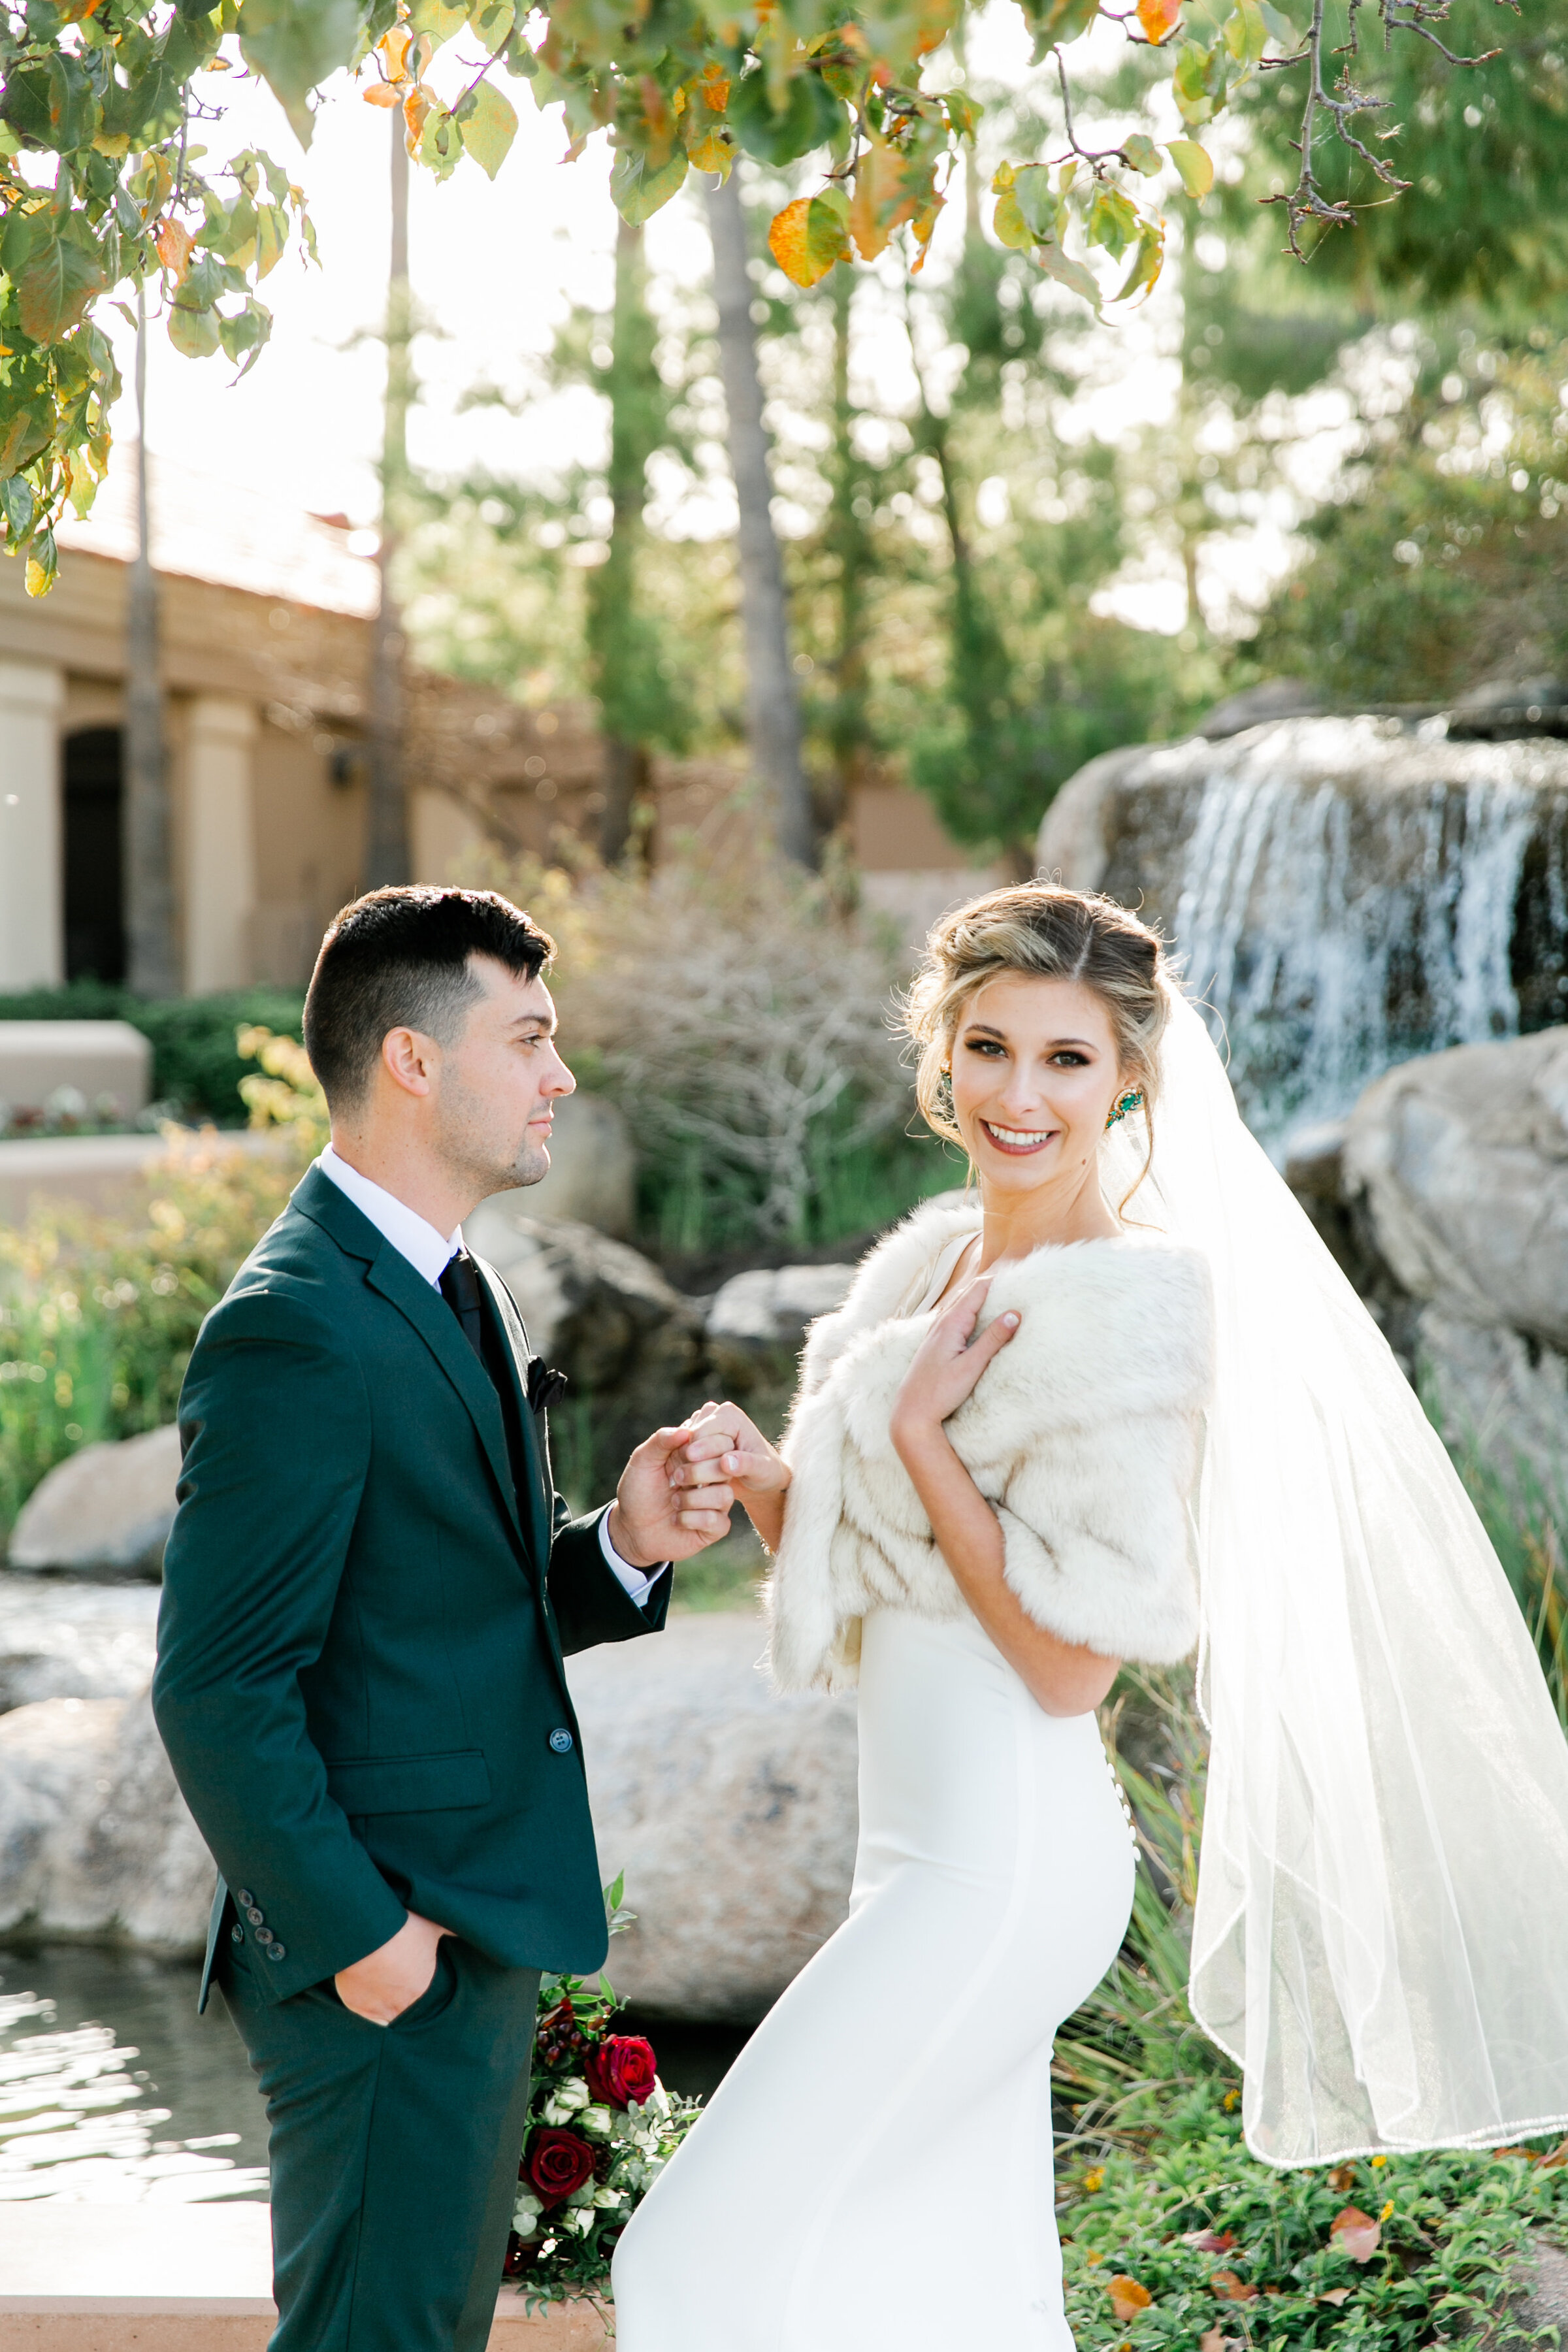 Karlie Colleen Photography - Gilbert Arizona Wedding - Val Vista Lakes - Brynne & Josh-485